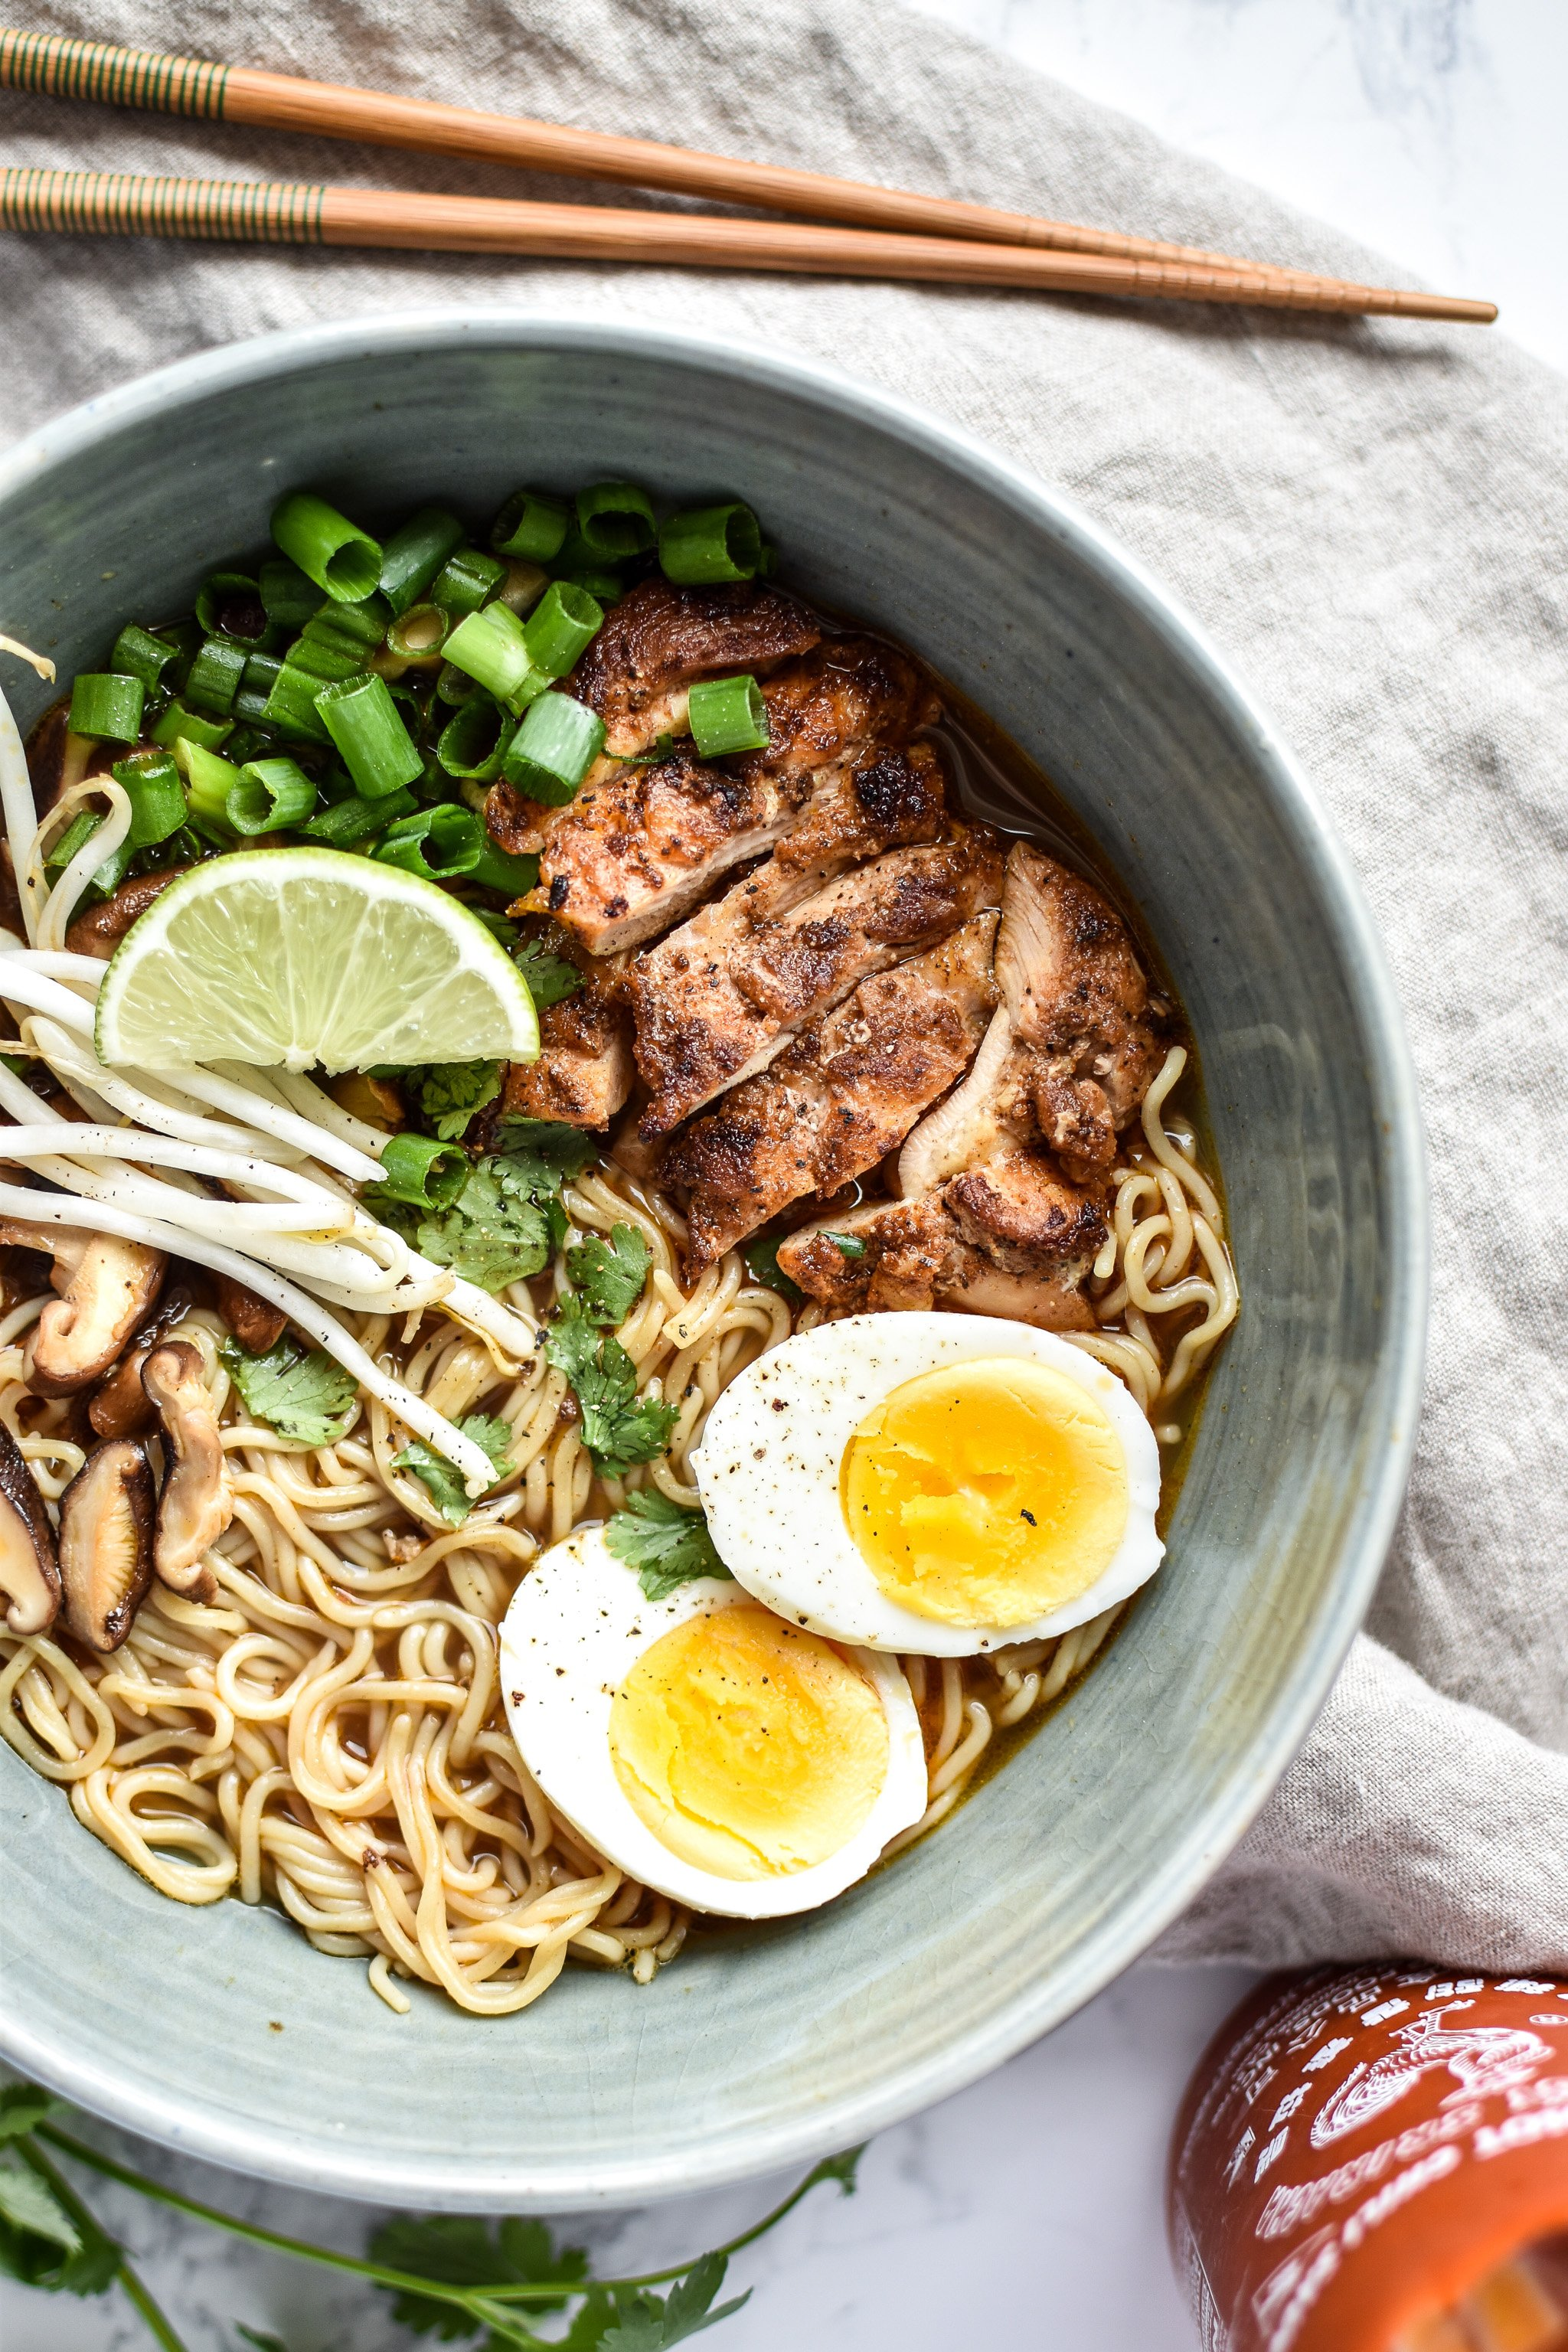 Simple Shiitake Mushroom Chicken Ramen recipe - I use chicken bone broth and brown rice ramen for this easy homemade noodle soup! - ProjectMealPlan.com